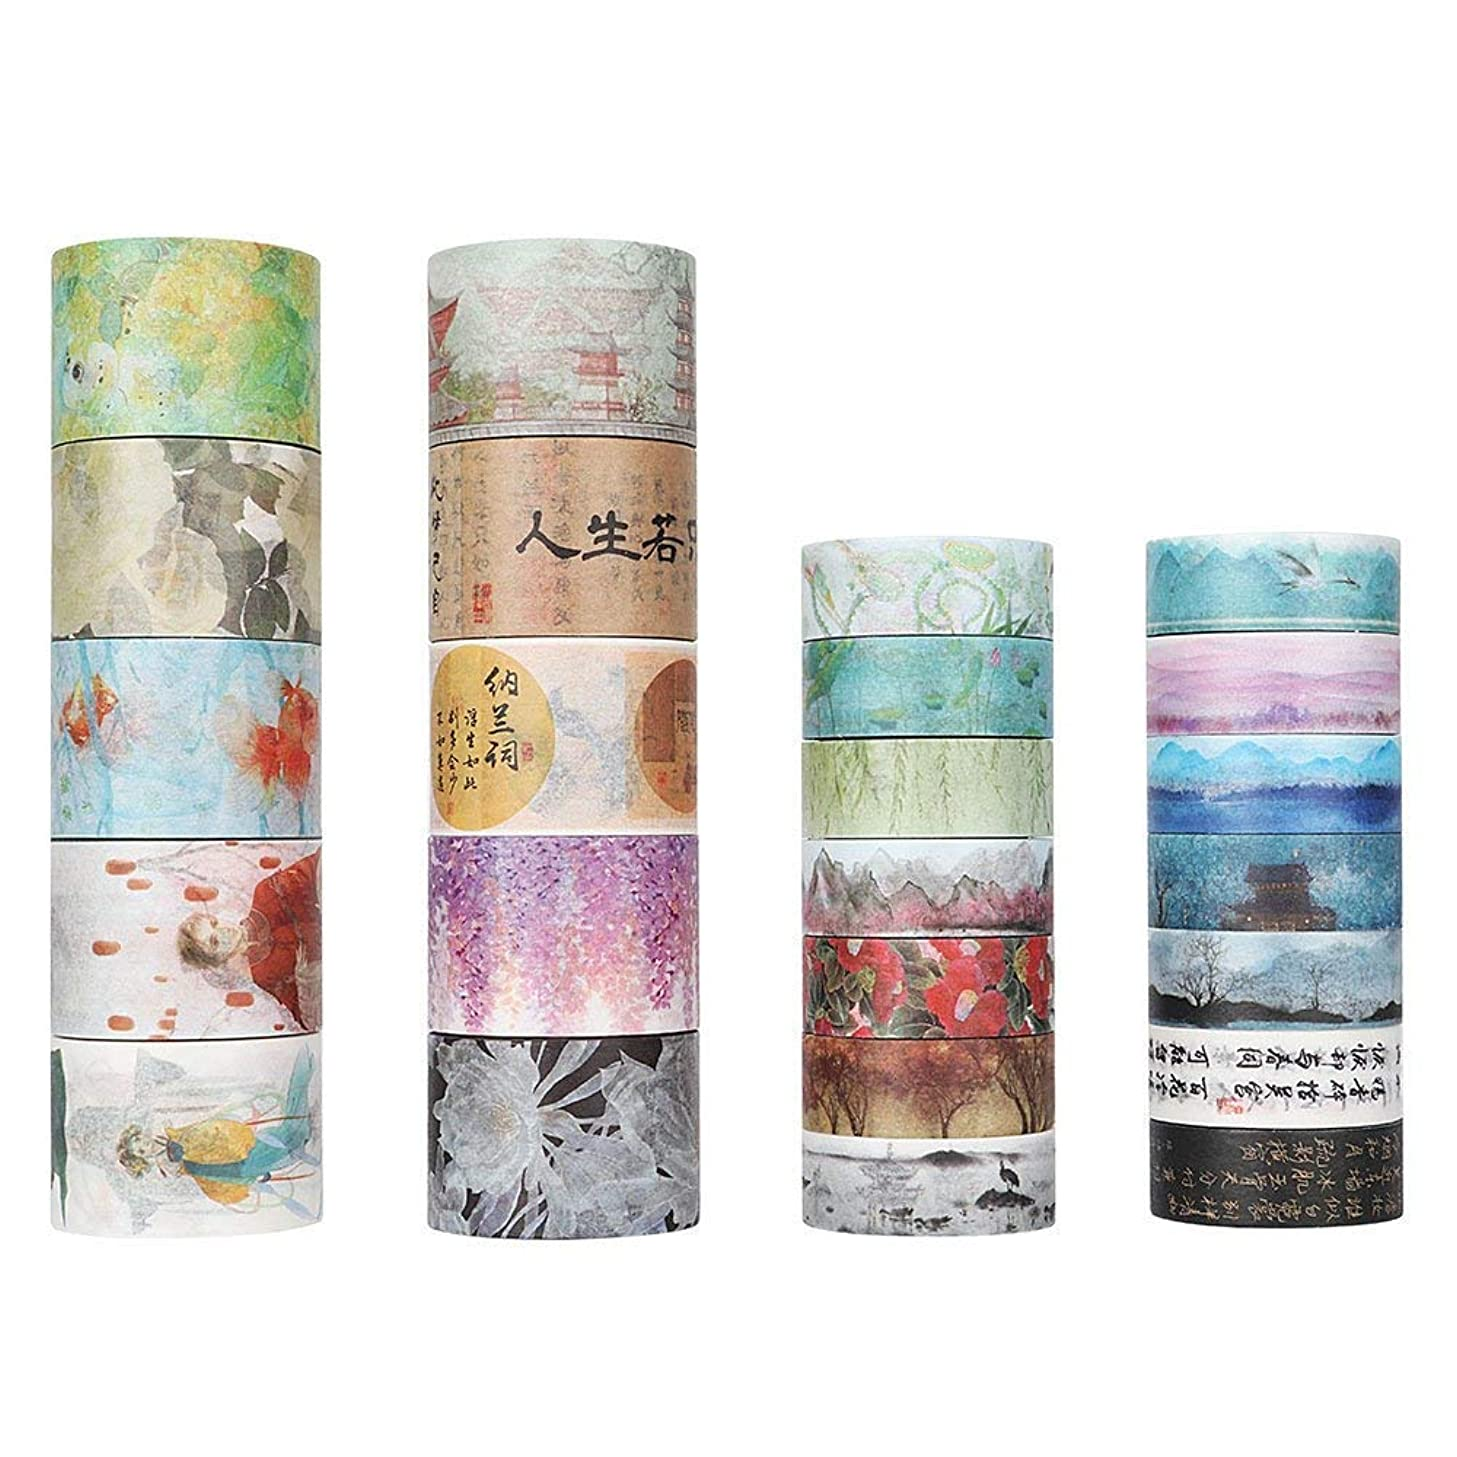 Molshine 24 Sets Decorative Japanese Washi Masking Adhesive Sticky Paper Tape –Chinese Classical Poetry Series Collection, (10 Rolls 30mm X 5m, 14 Rolls 15mm X 7m) for Journals, Daily Planners DIY